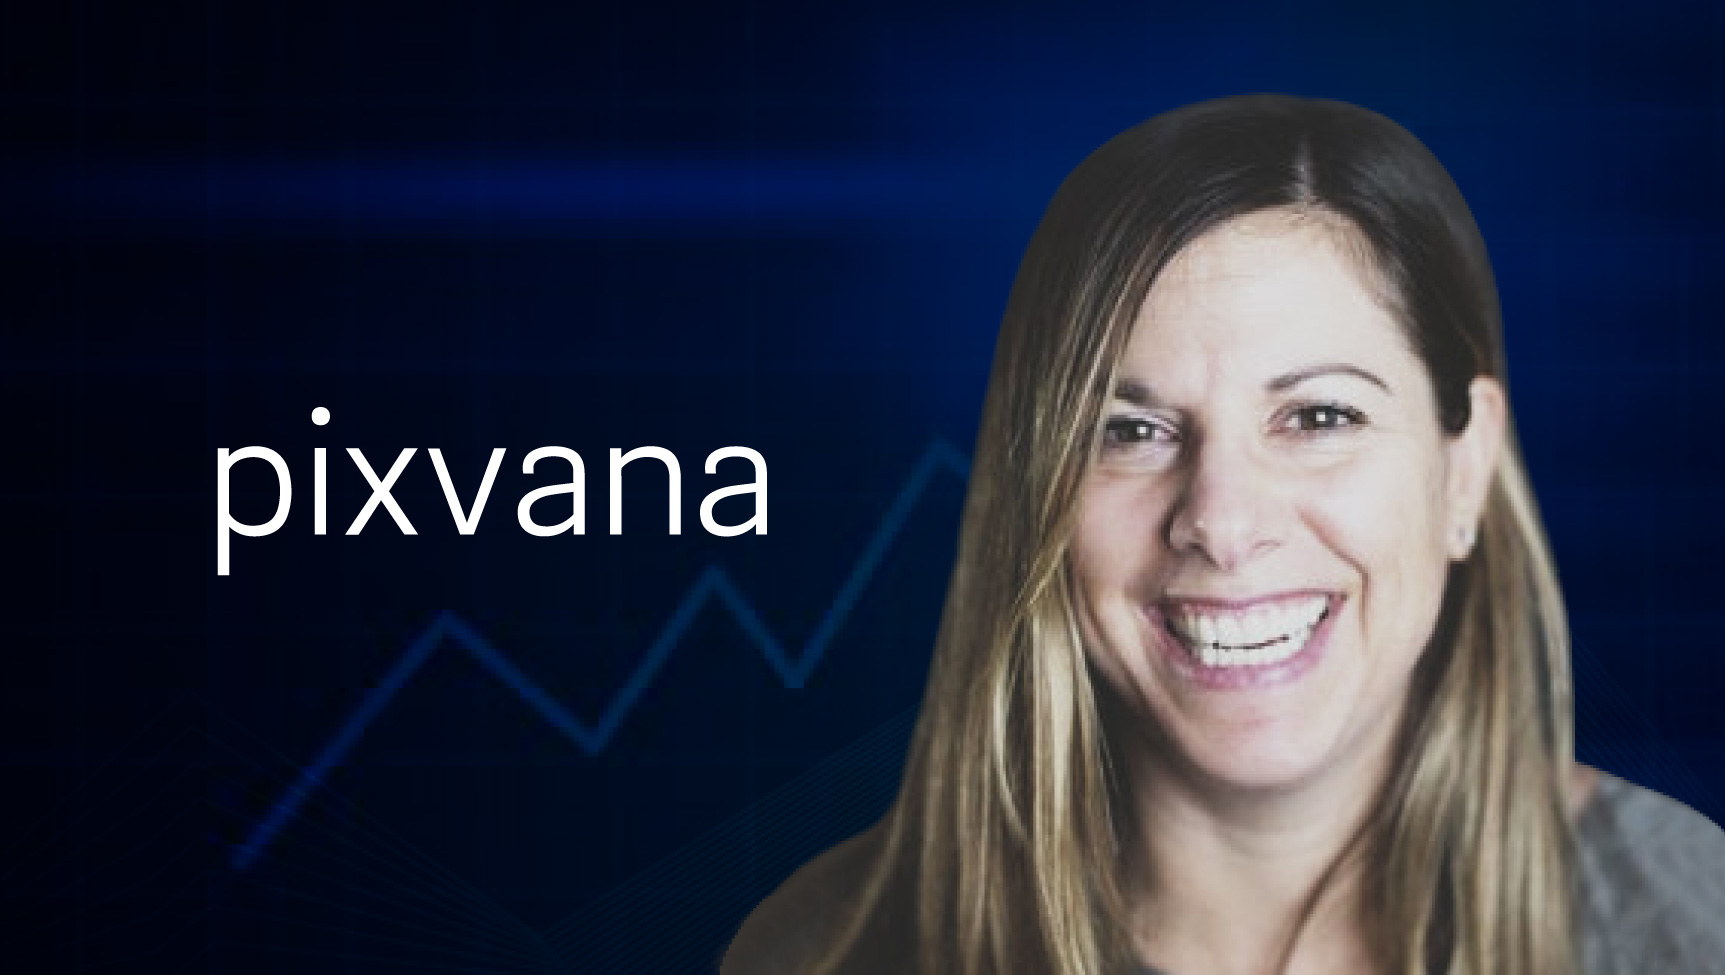 SalesTech Star Interview with Rachel Lanham, COO at Pixvana